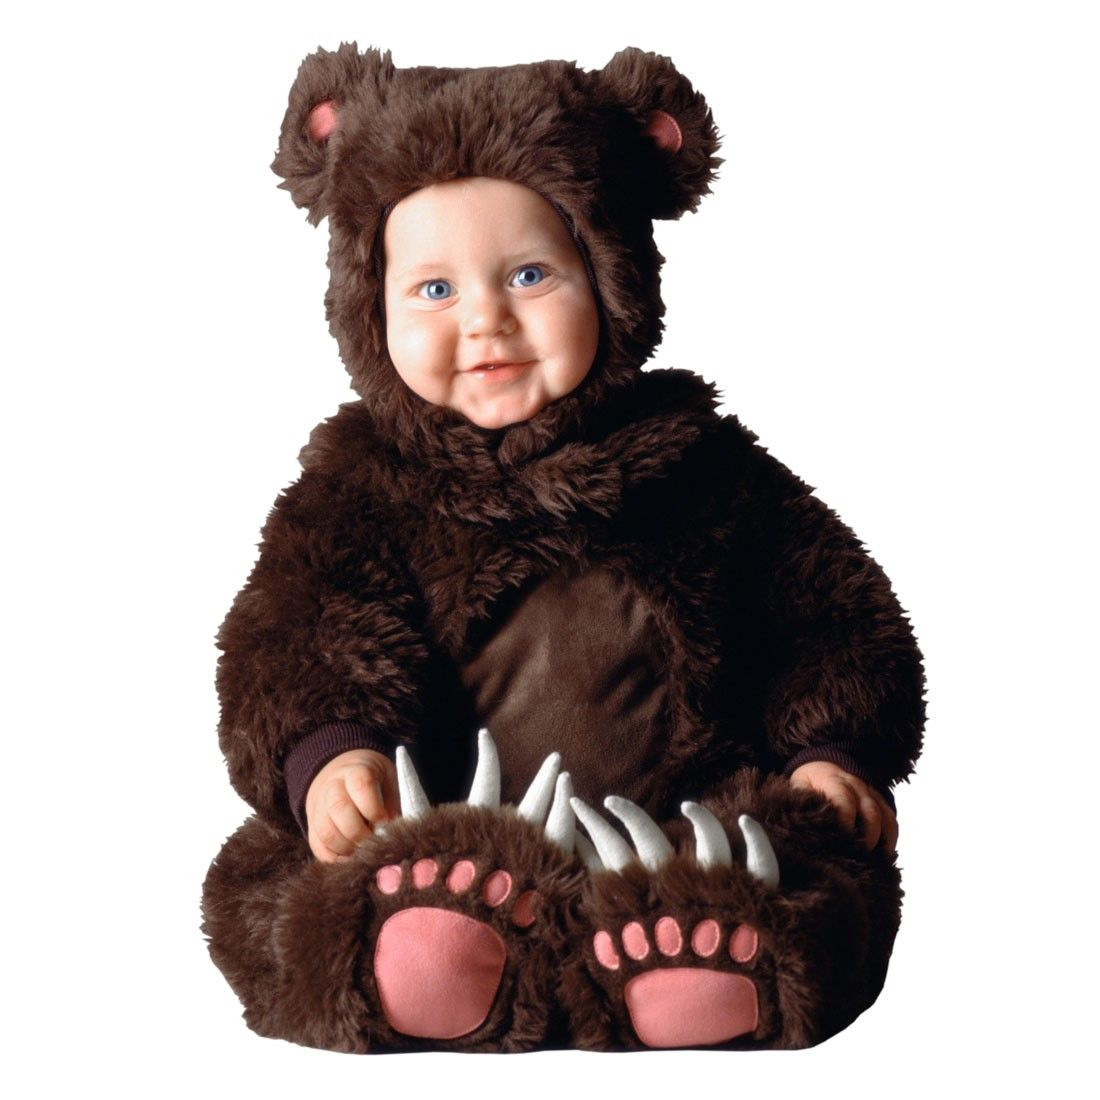 sc 1 st  Pinterest & bear-costume-large.jpg (1000×1200) | ??????? ??????? | Pinterest